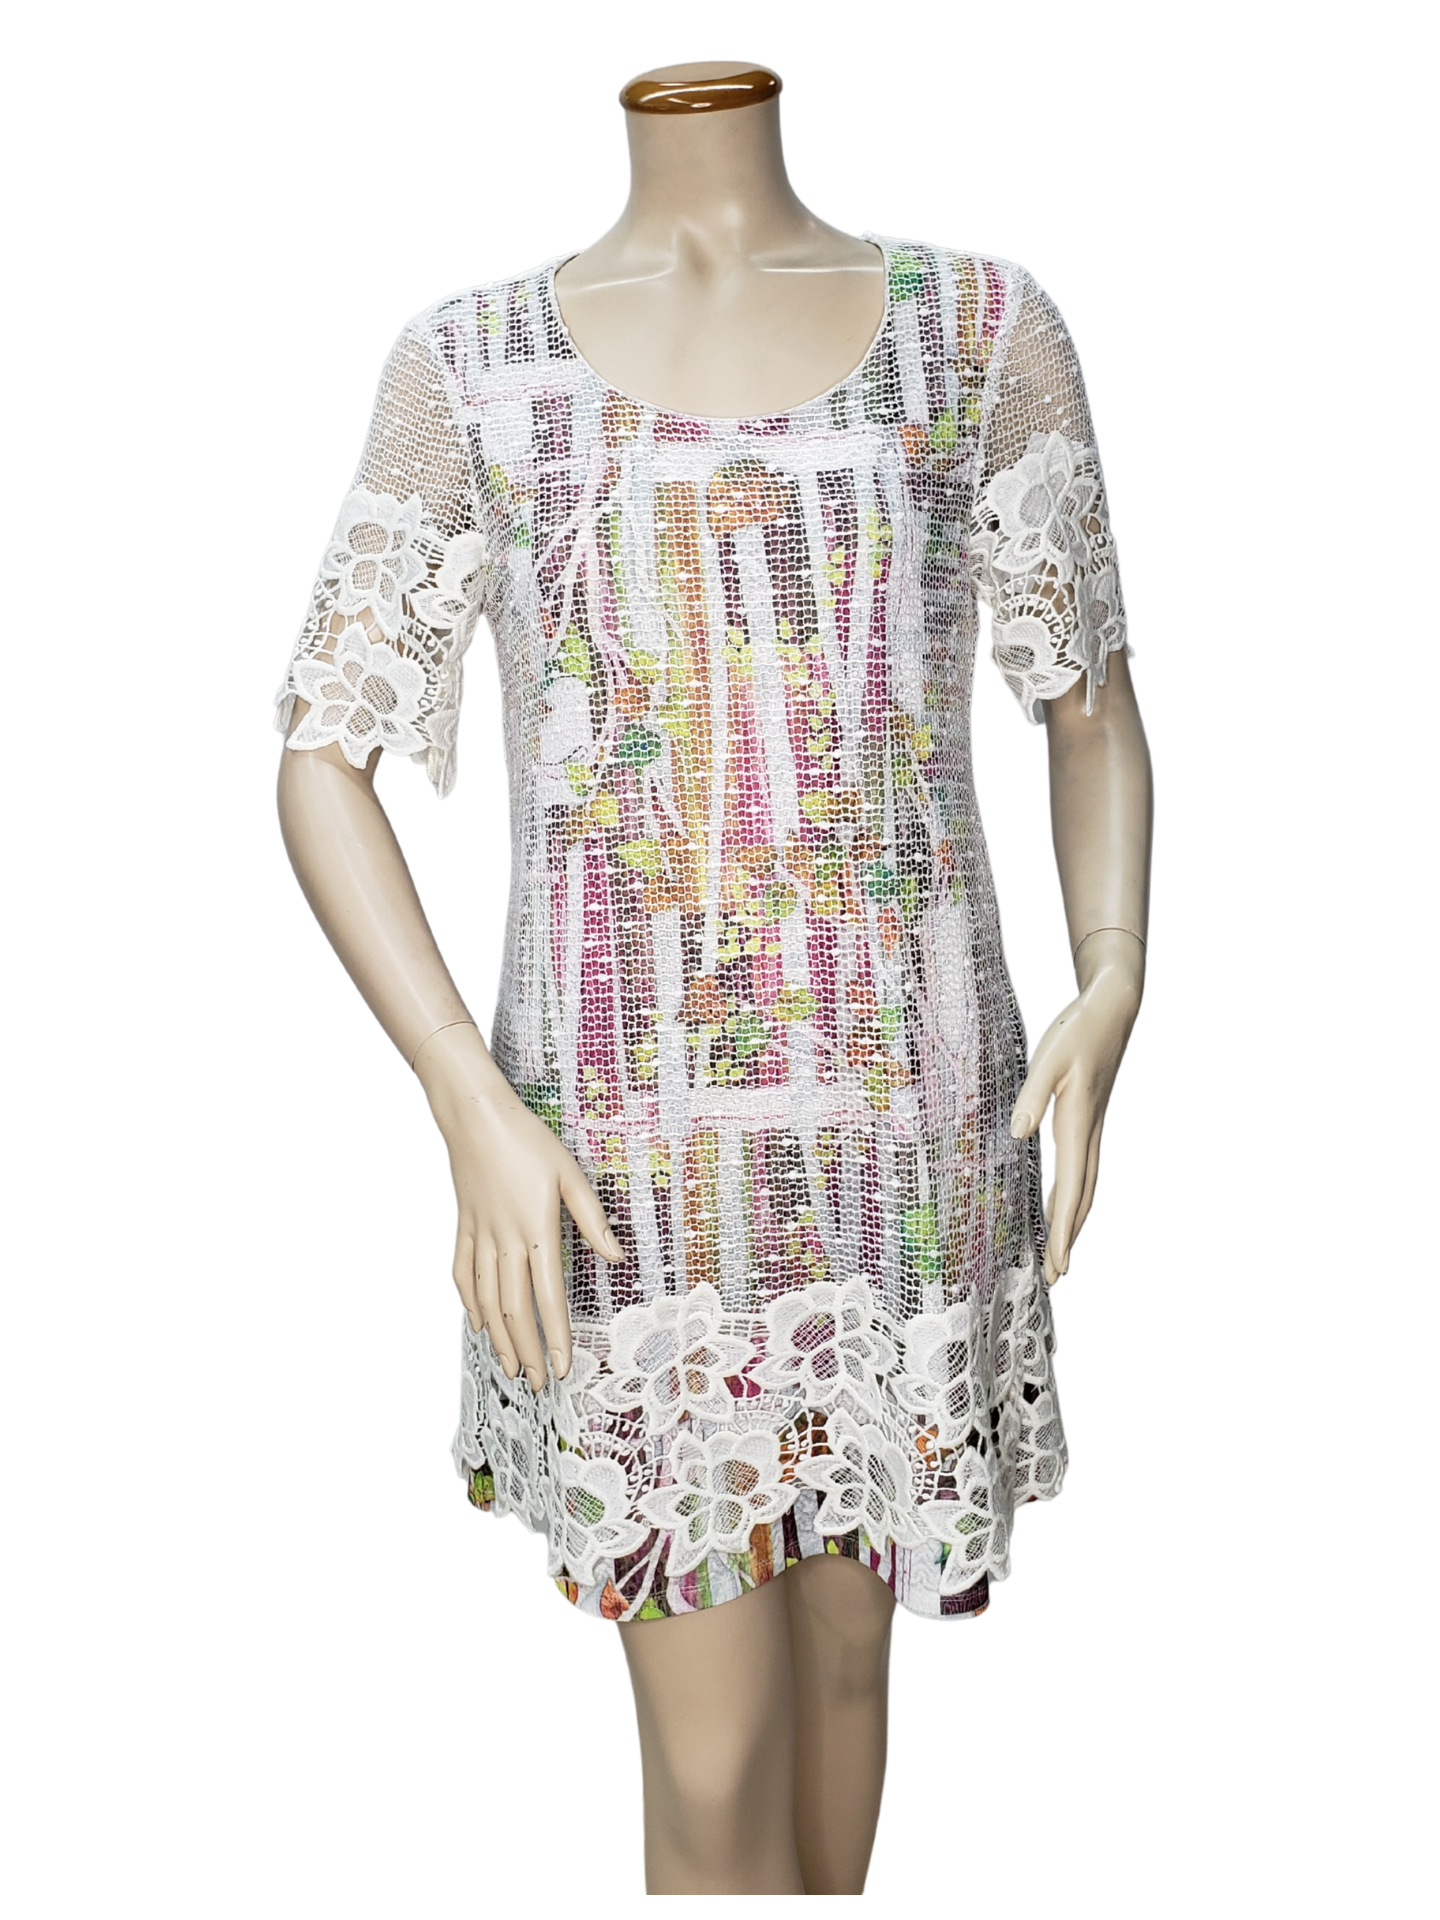 D065- Lace Layered Printed Dress with Lace Sleeves - Fashque